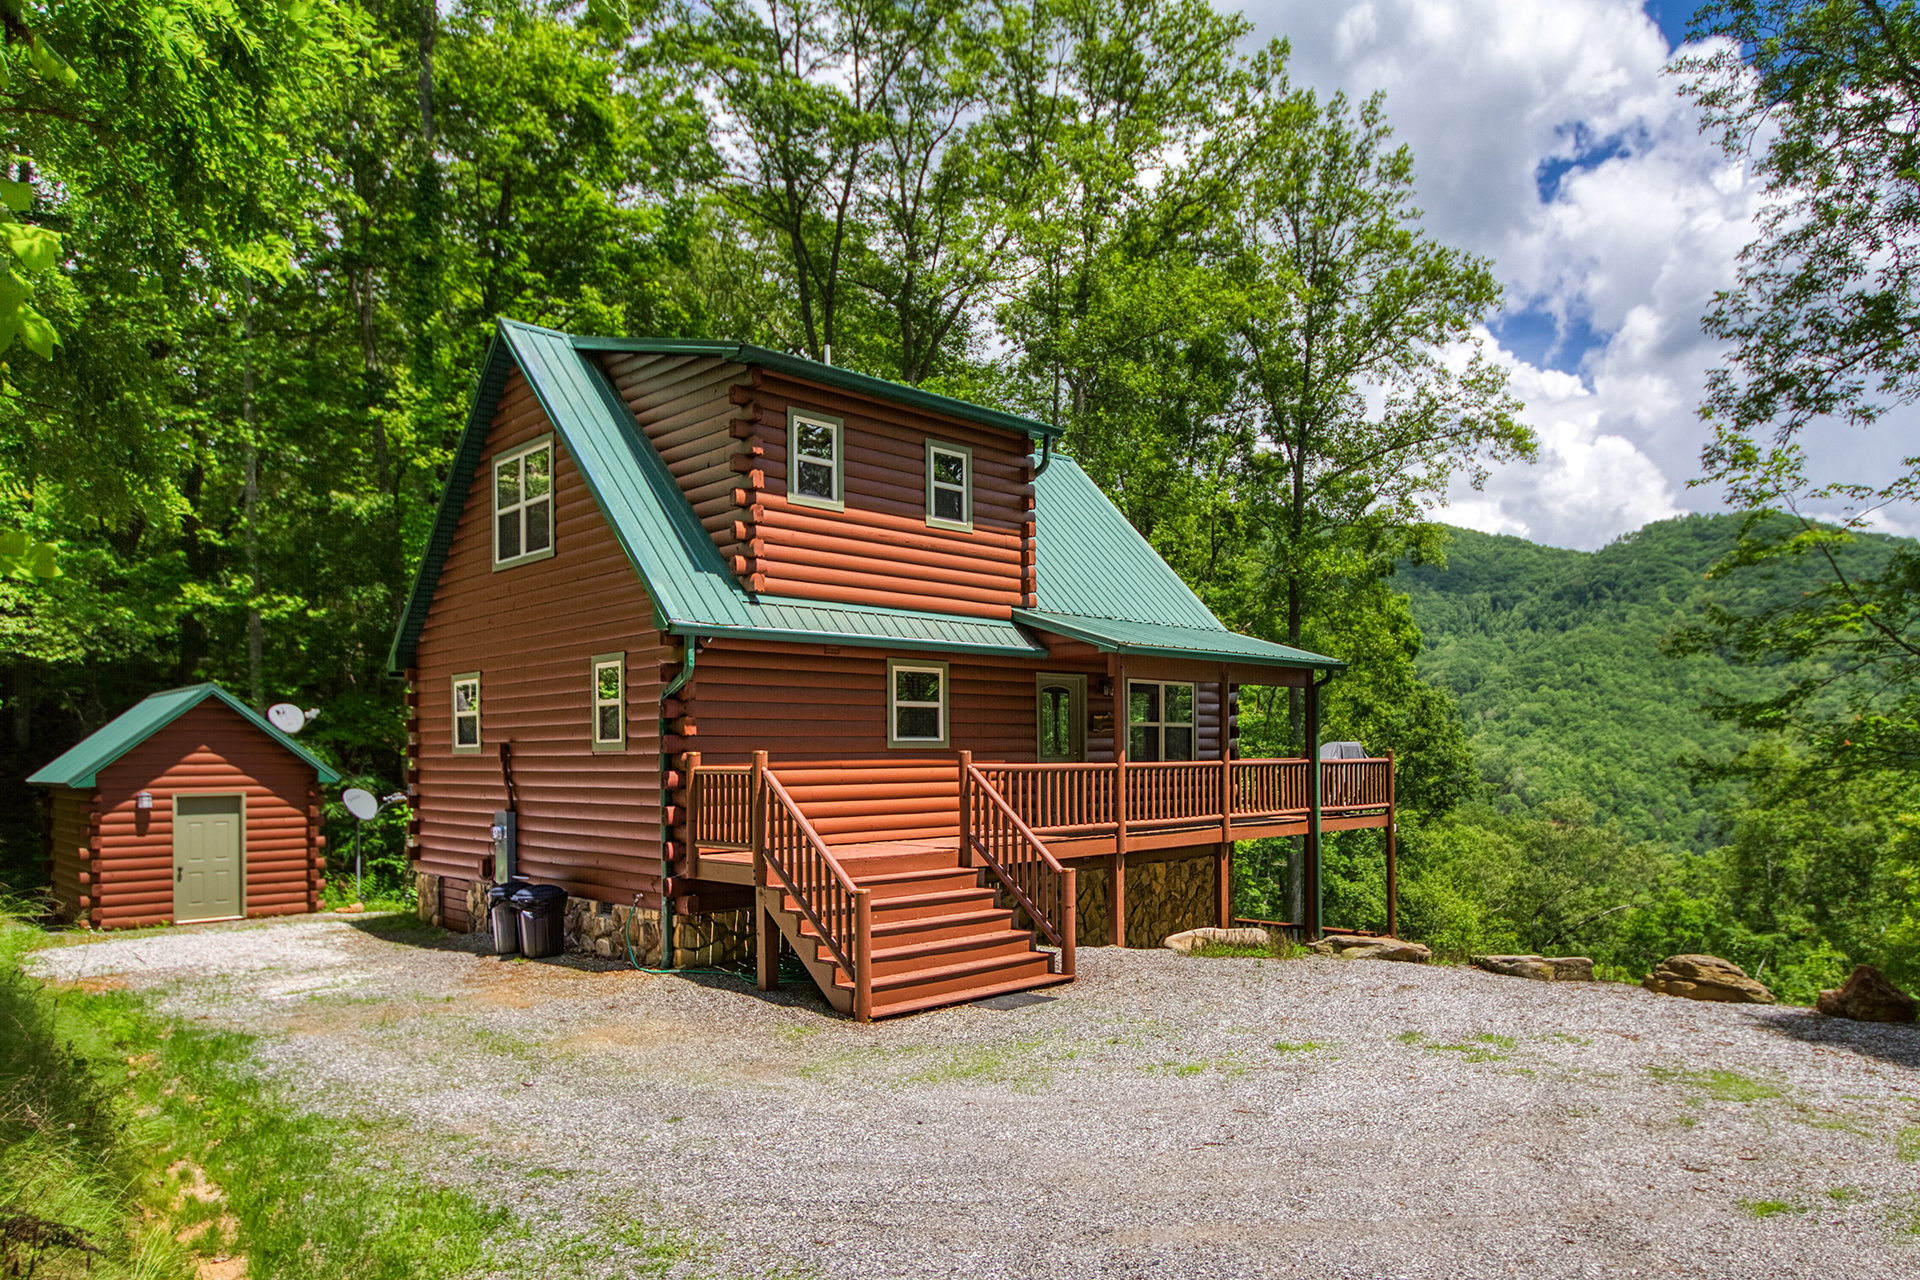 Secluded nc mountain cabin rental by carolina mountain Smoky mountain nc cabin rentals